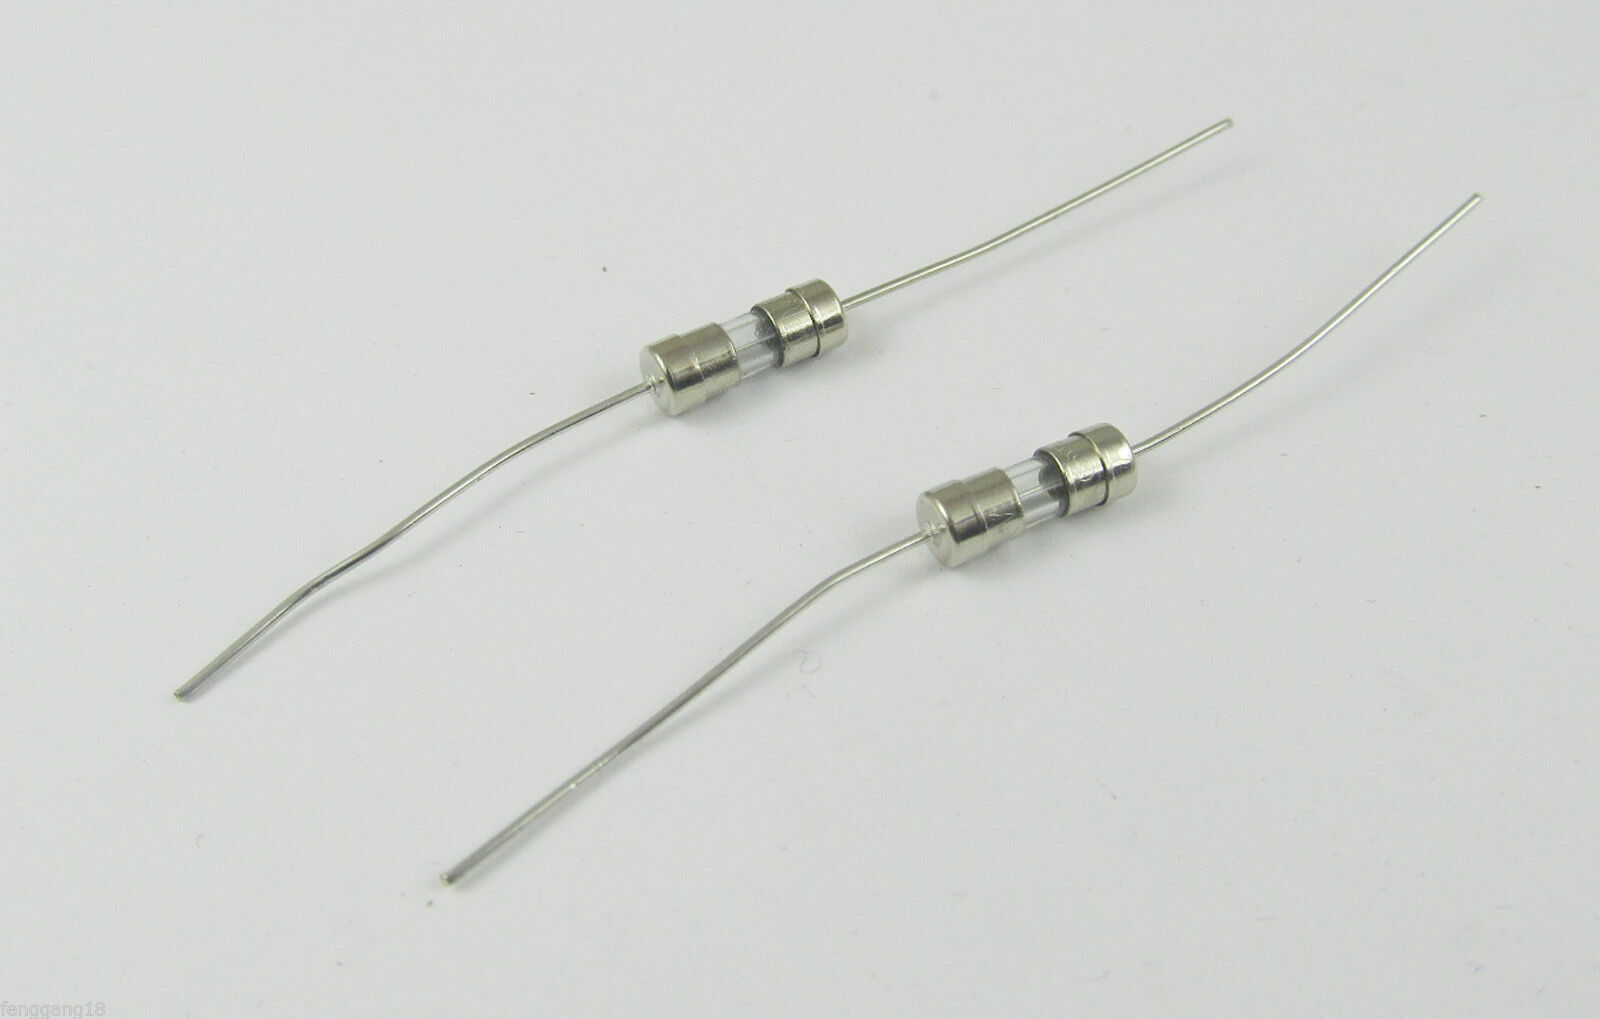 100pcs Glass Tube Fuse Axial Leads 3.6 x 10mm 2A 2Amps F2A